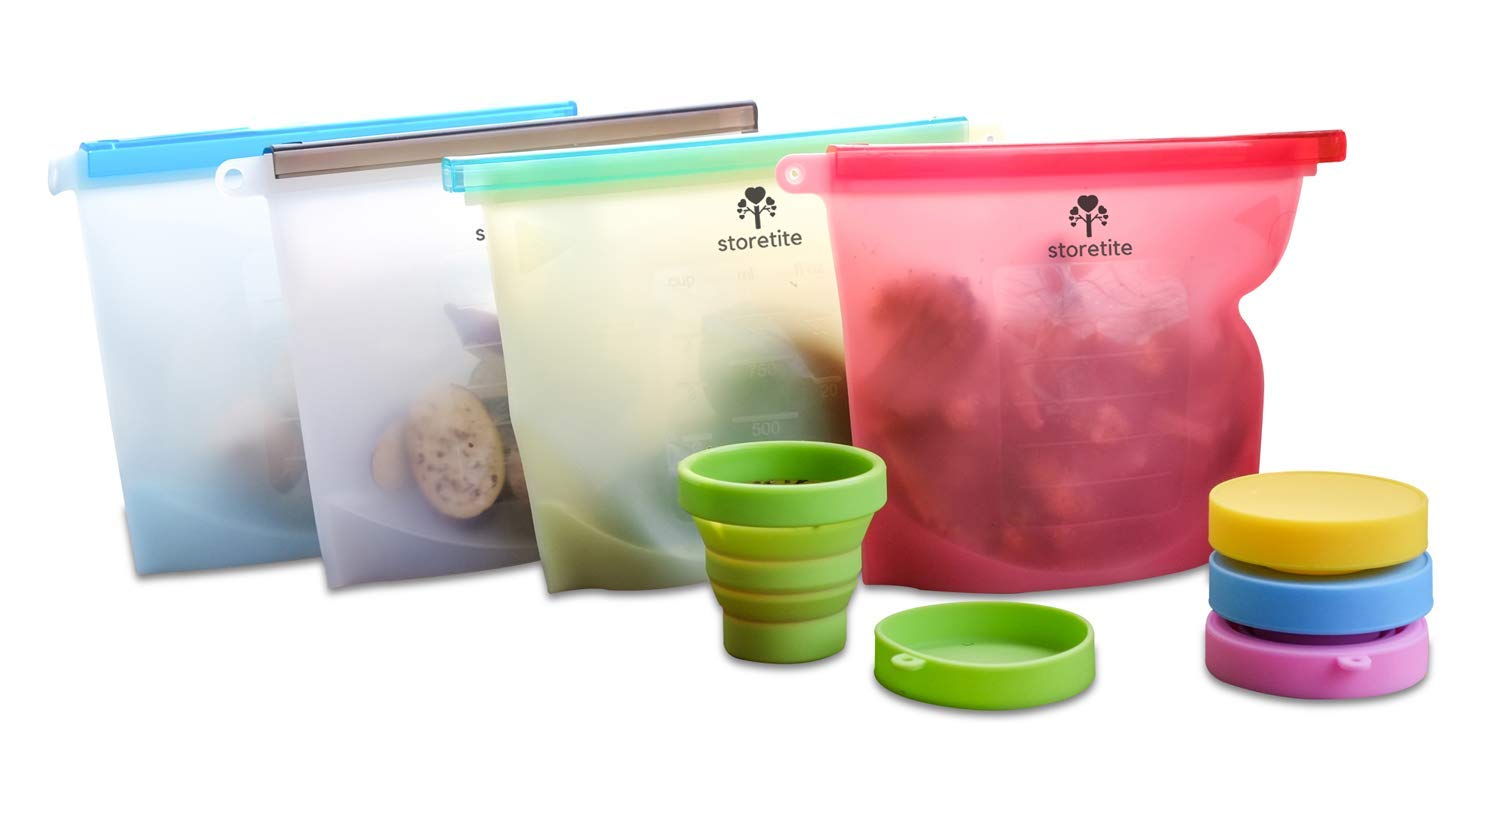 Reusable Silicone Food Storage Bag 4 Pack -Airtight Zip Seal Bags, Steam/ Freezer Bags, Eco Friendly Sandwich Baggies for Kids, Eco-Gifts for Mom, Dad, Nana, Papa, Bonus Collapsible Cup: Amazon.es: Hogar